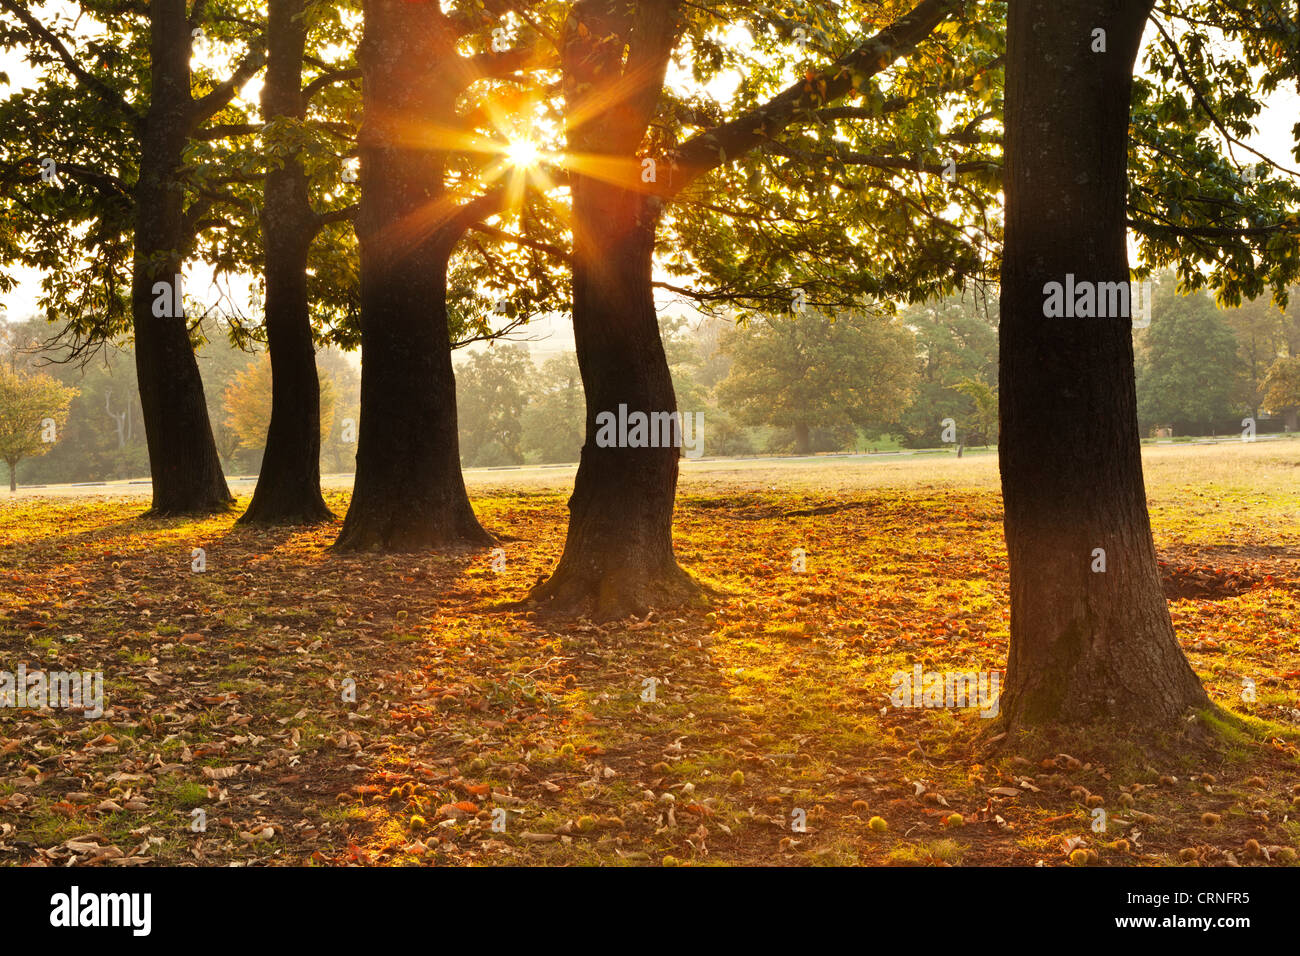 Autumnal sunrise viewed through a row of trees in Knole Park. - Stock Image